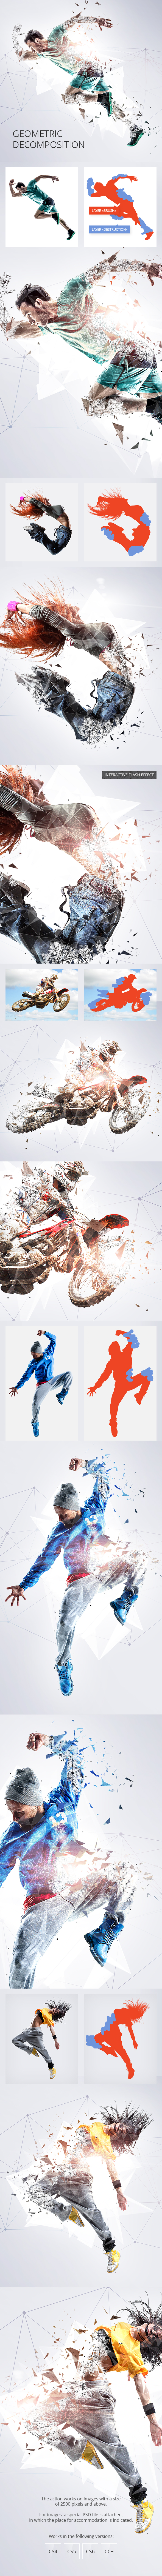 GraphicRiver Geometric Decomposition Photoshop Action 20615244